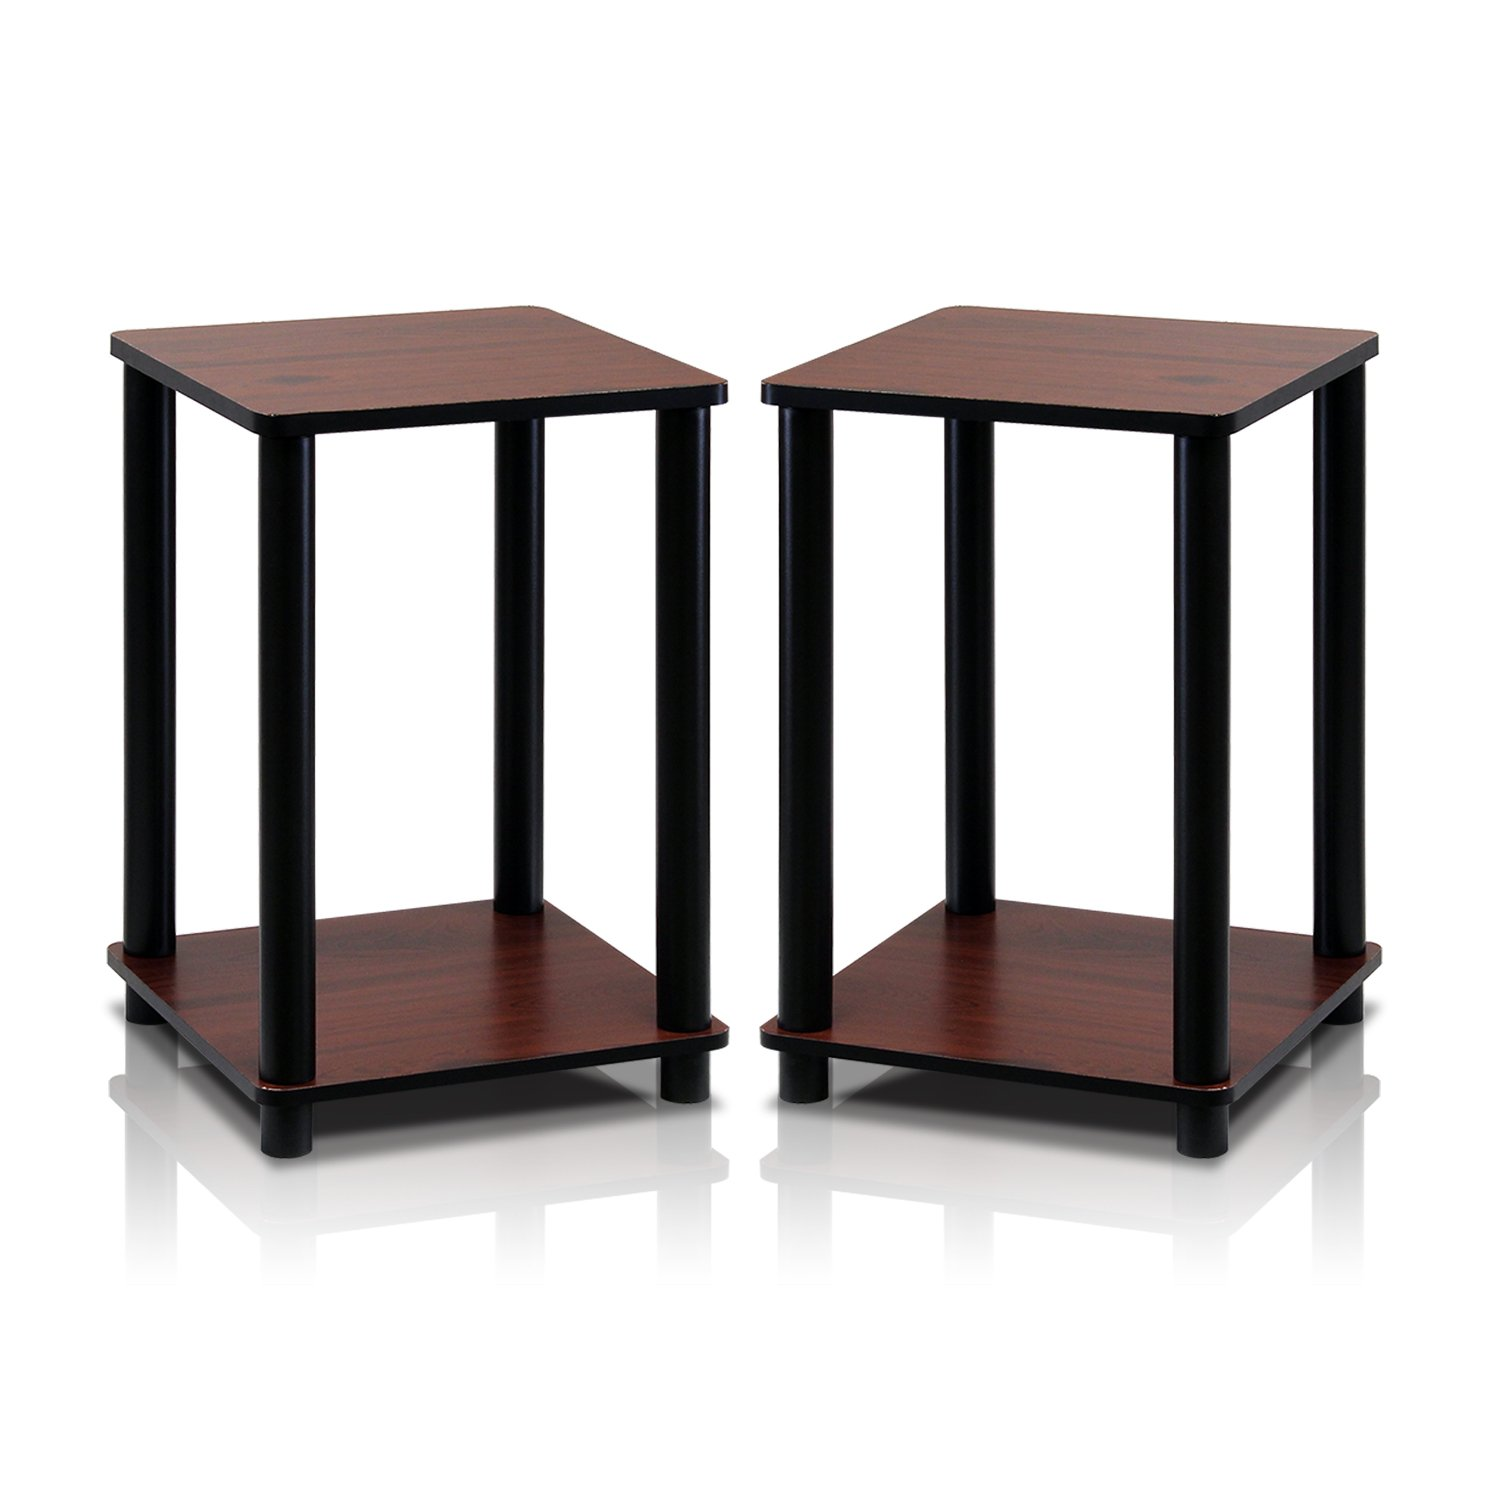 Furinno 2-99800RDC Turn-N-Tube End Table Corner Shelves, Set of 2, Dark Cherry/Black by Furinno